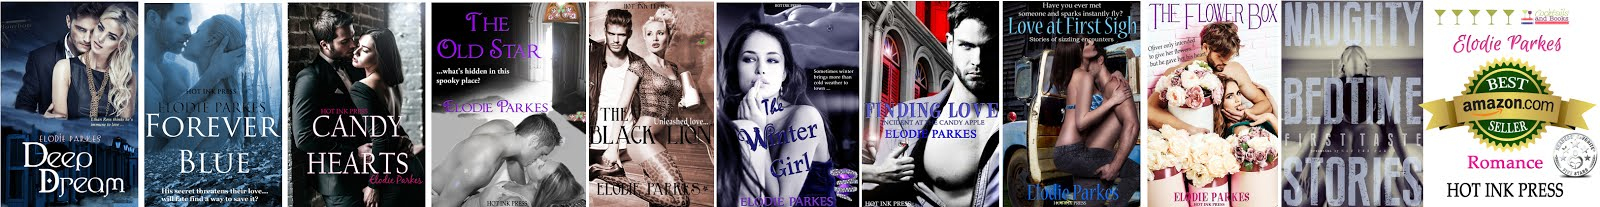 Elodie Parkes erotic romance from Hot Ink Press on KU